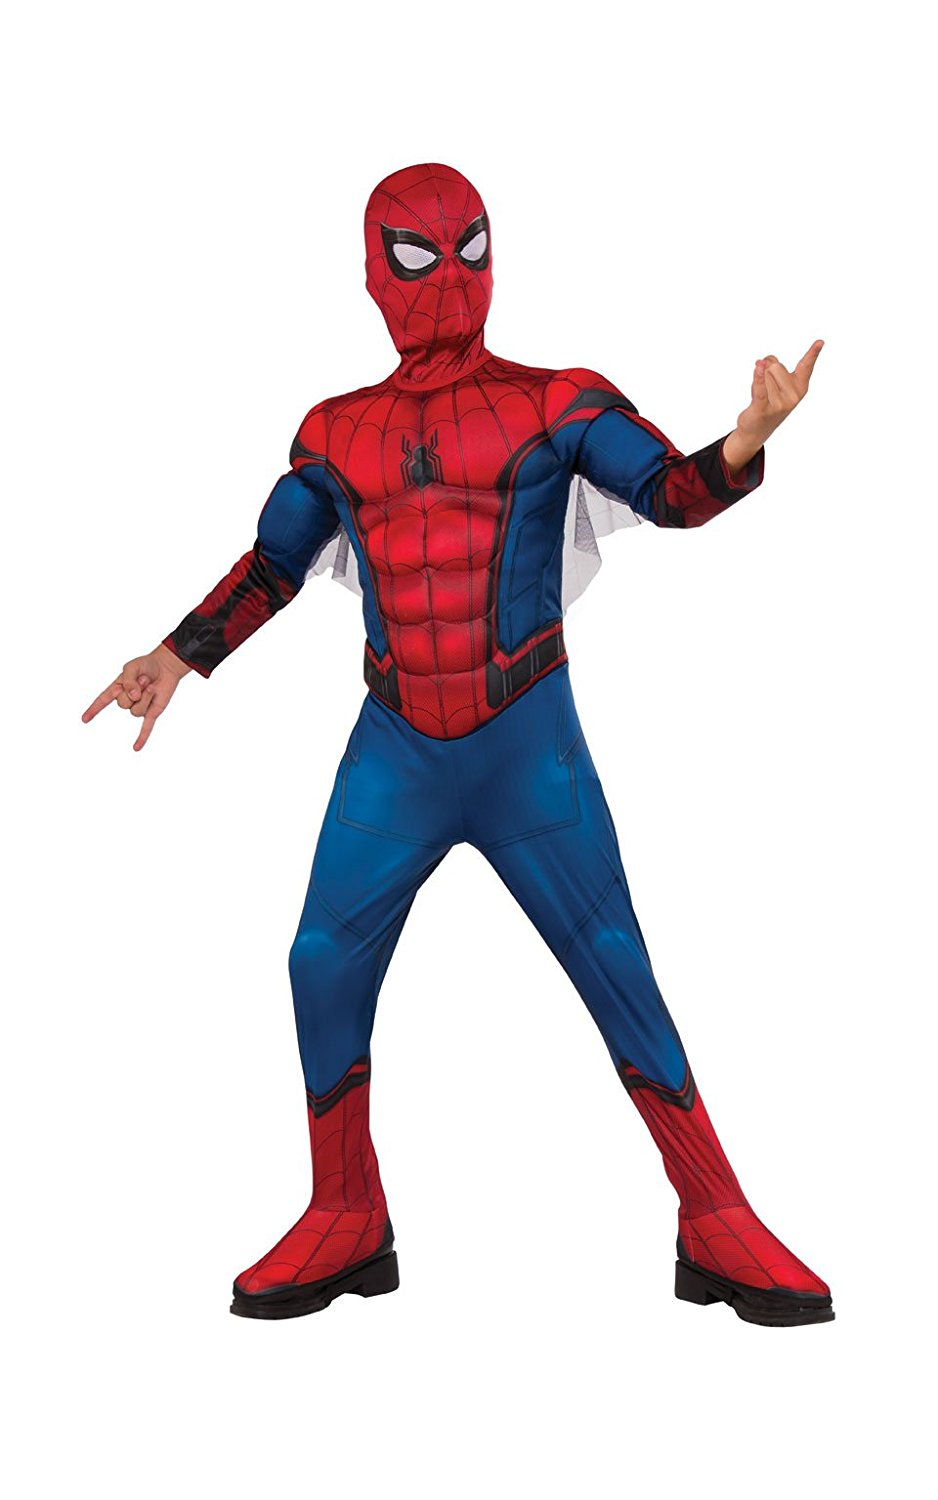 Spiderman Homecoming 2017 costume 630731